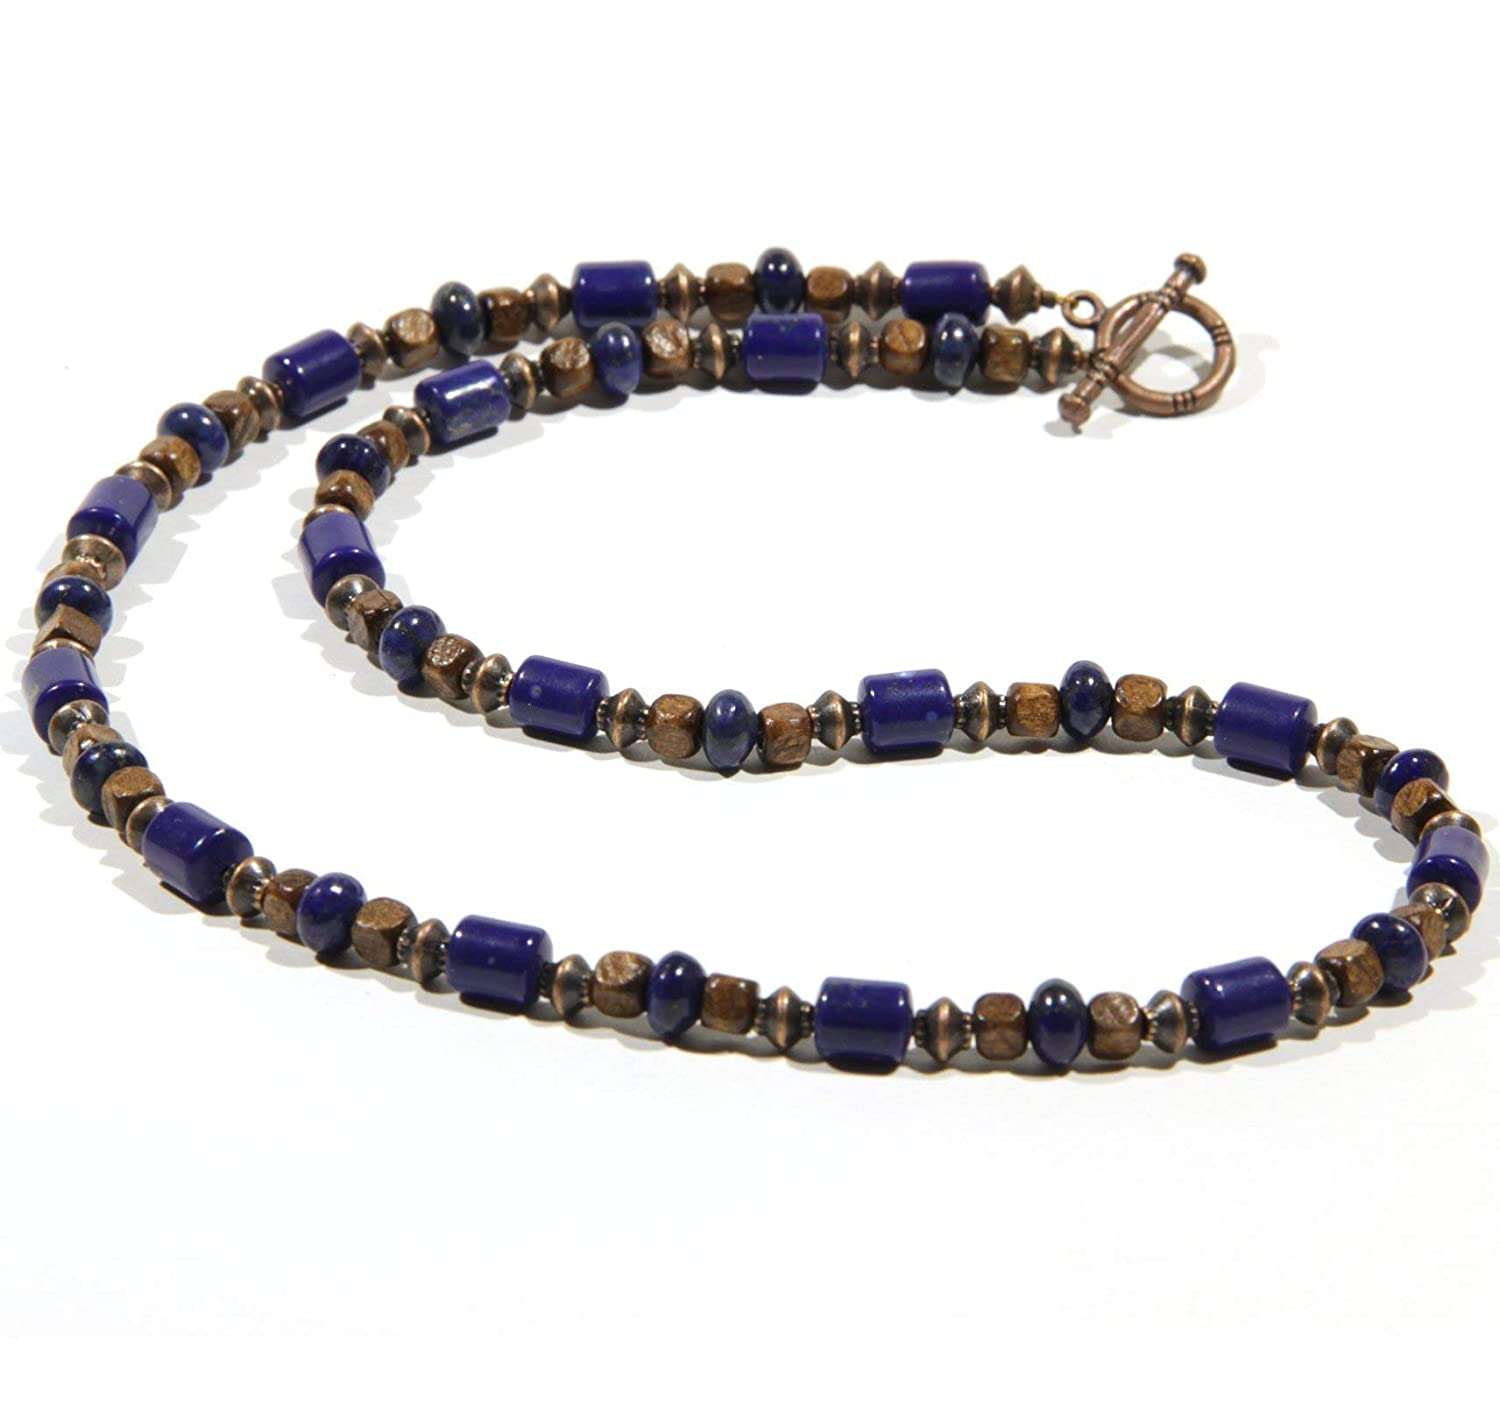 Necklace CHNA06-19 Lapis Choker for Men and Women